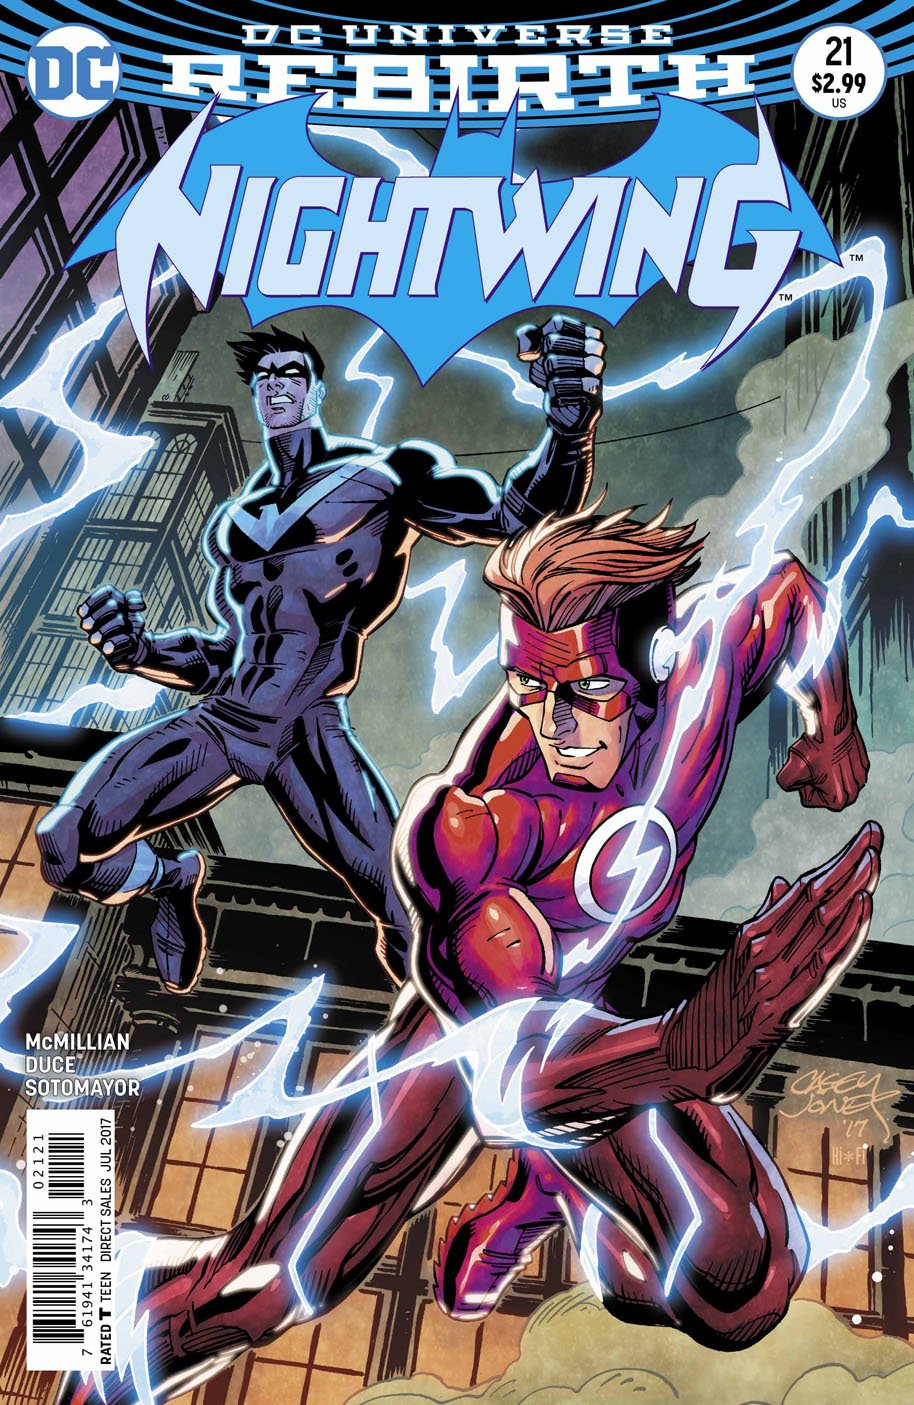 Nightwing 21 open order variant cover